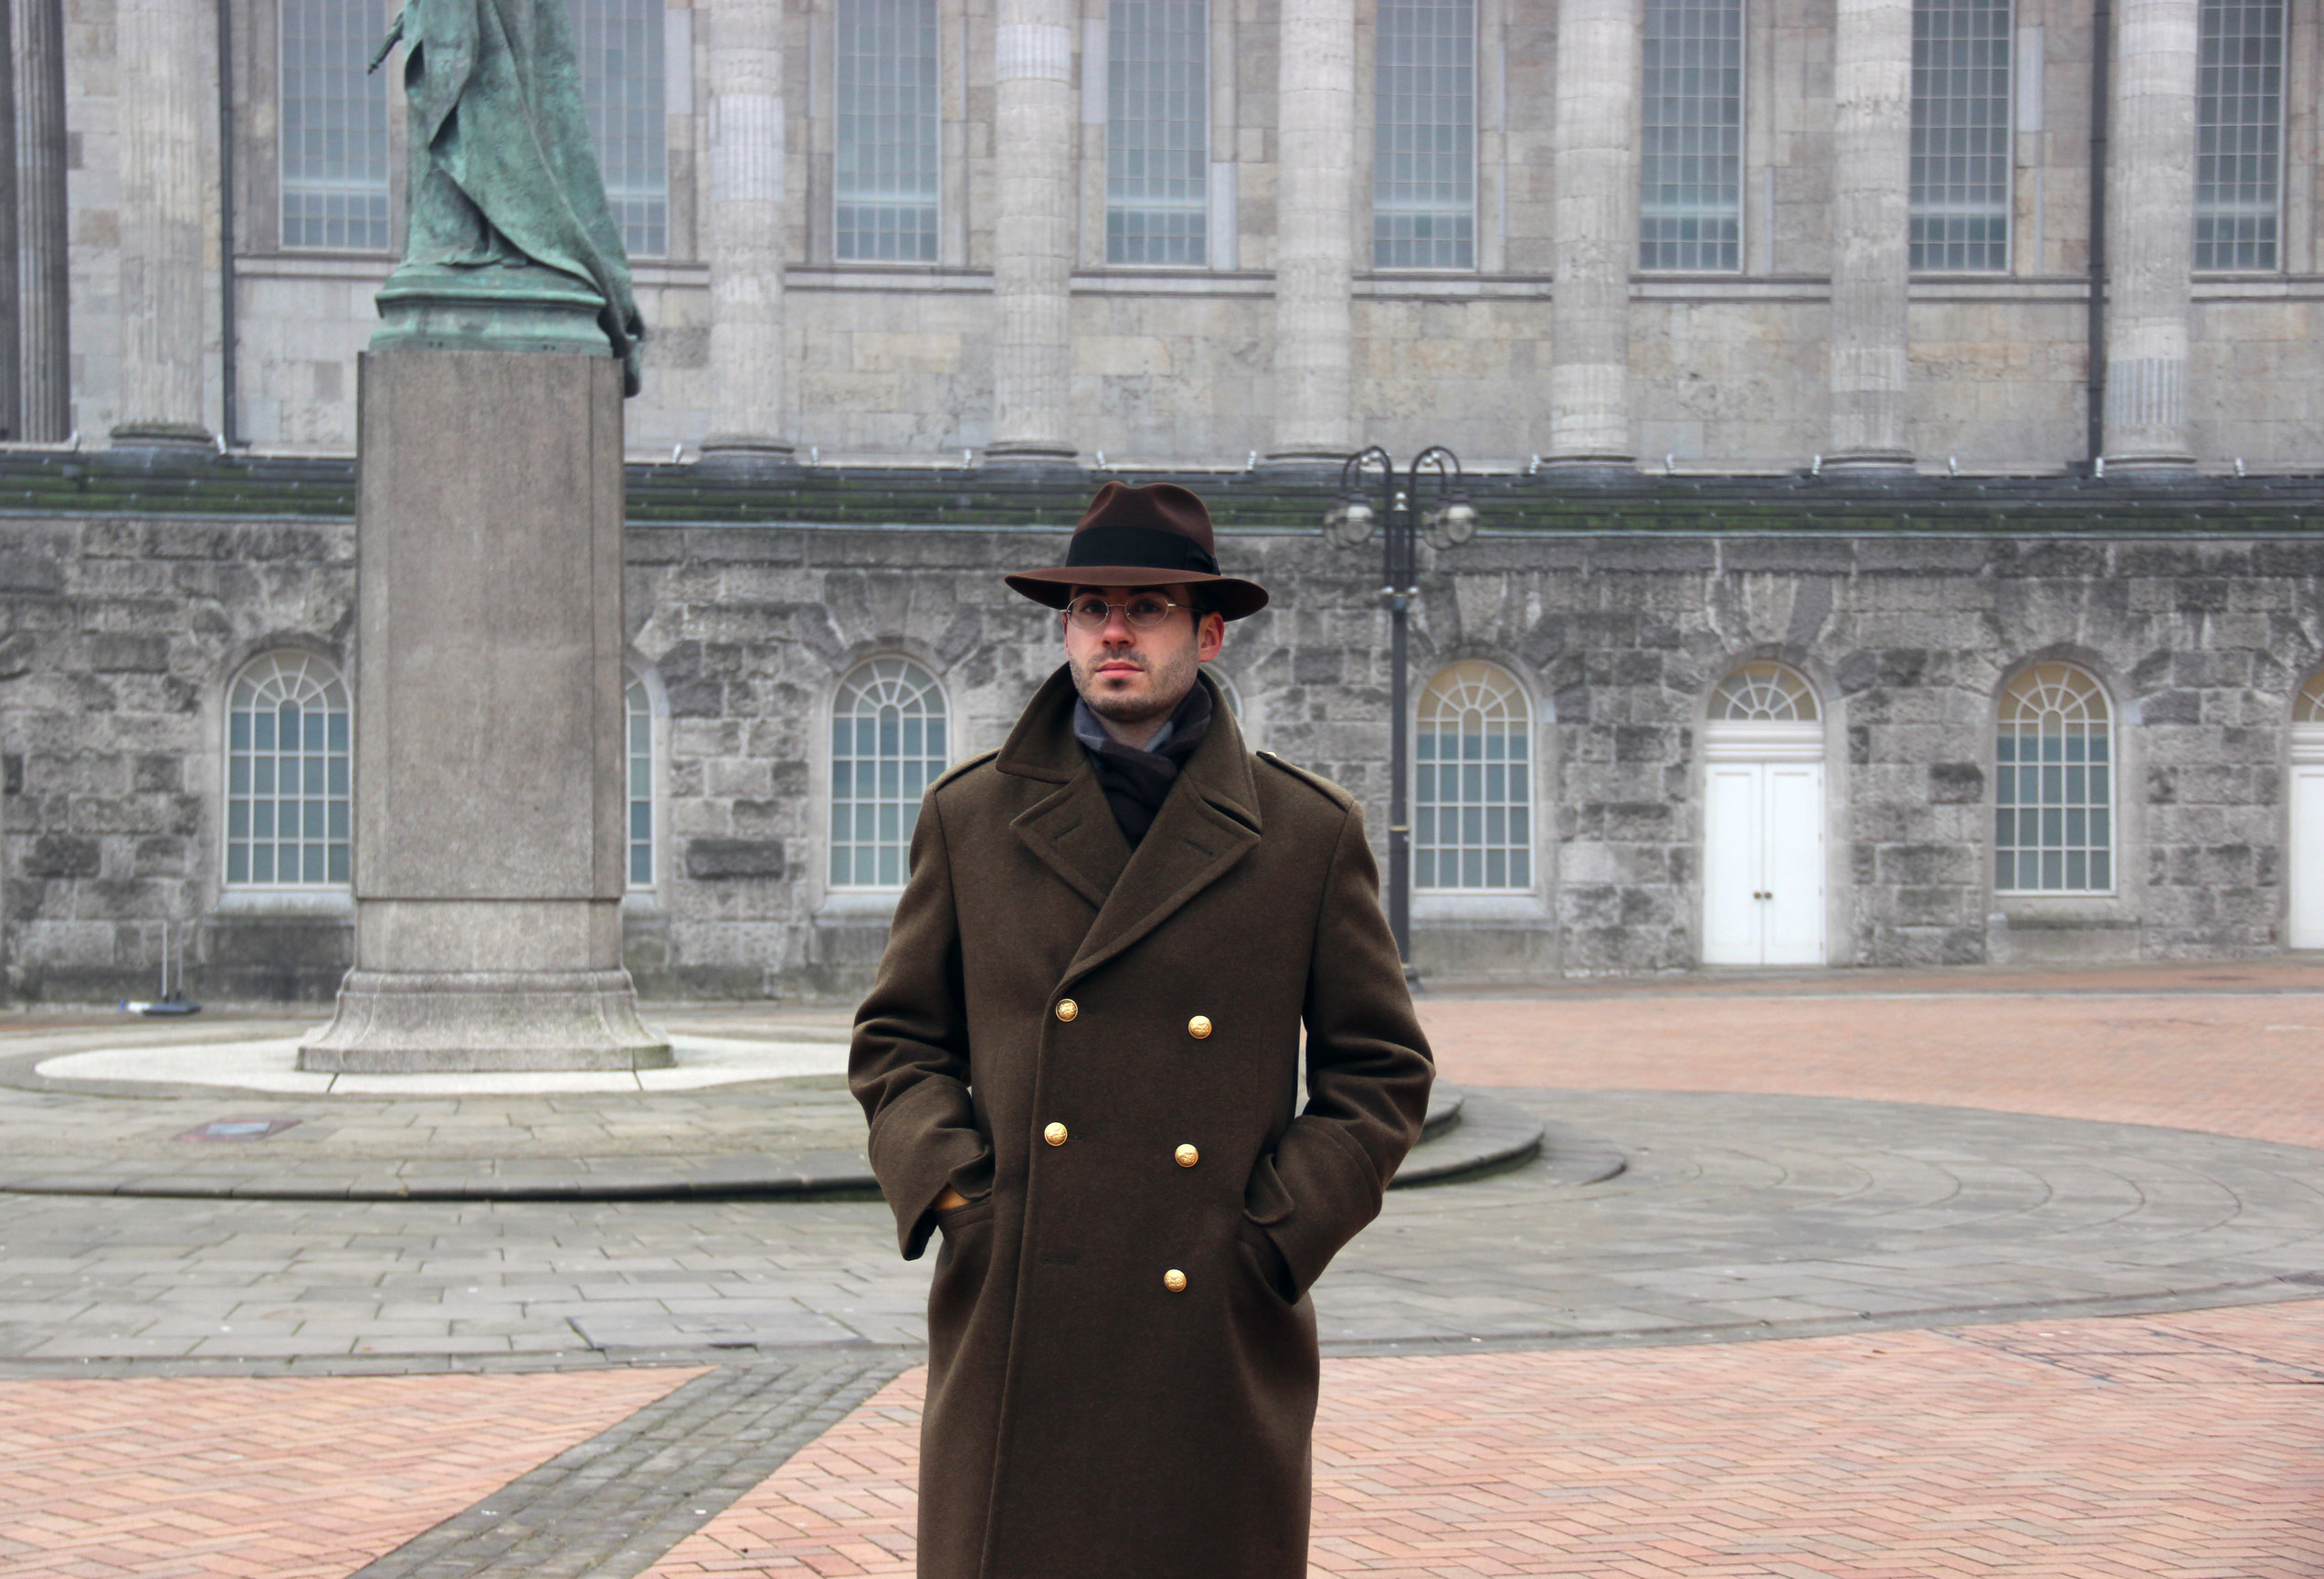 Stetson Temple & Army Green Ulster by LONG STORY SHORT